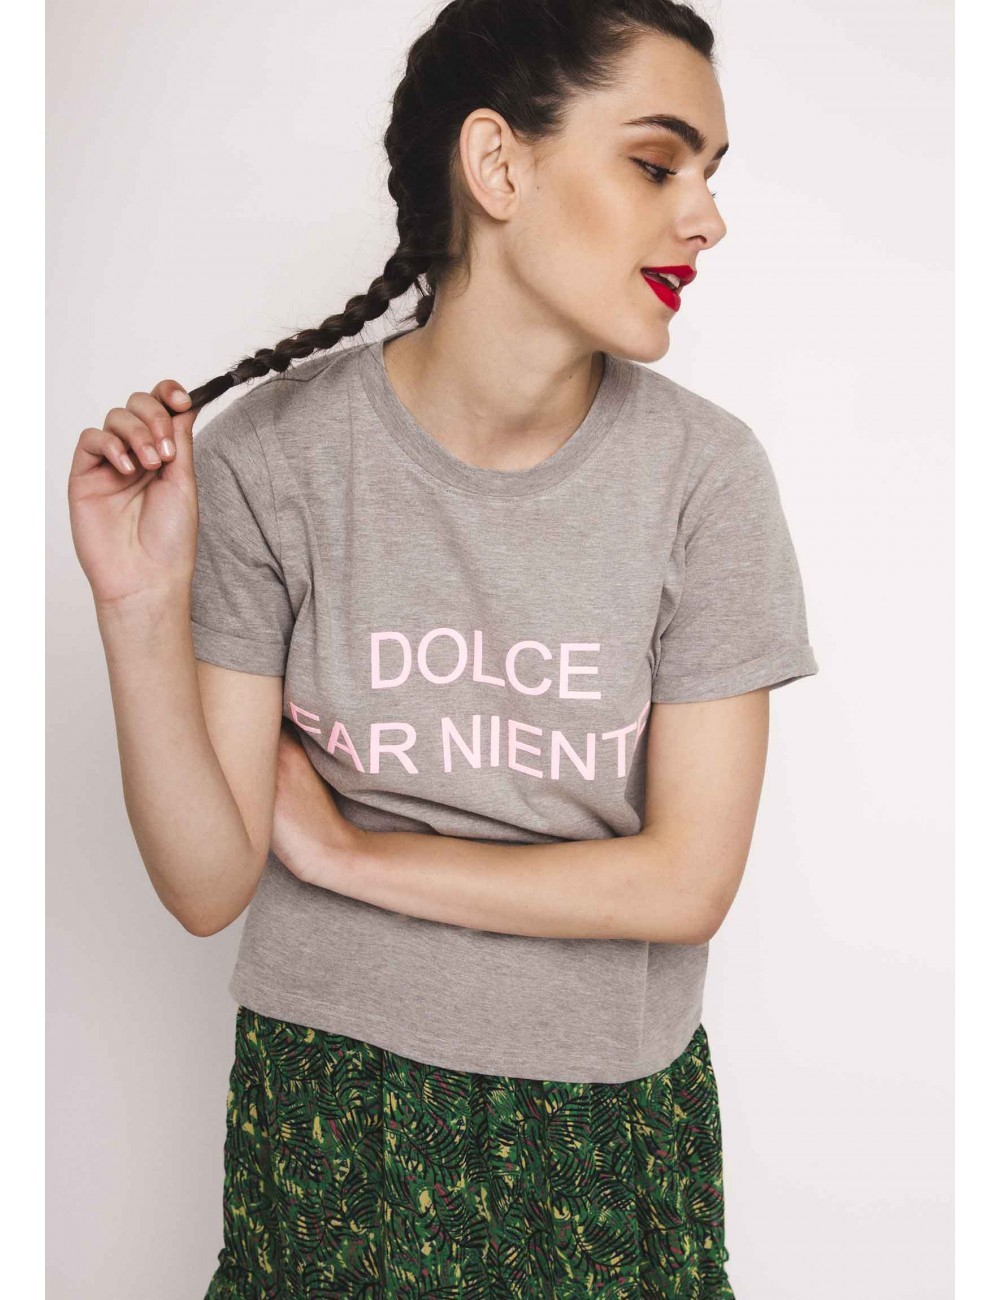 391768a27710 Dolce T-shirt - Bettina Stores Bettina Stores